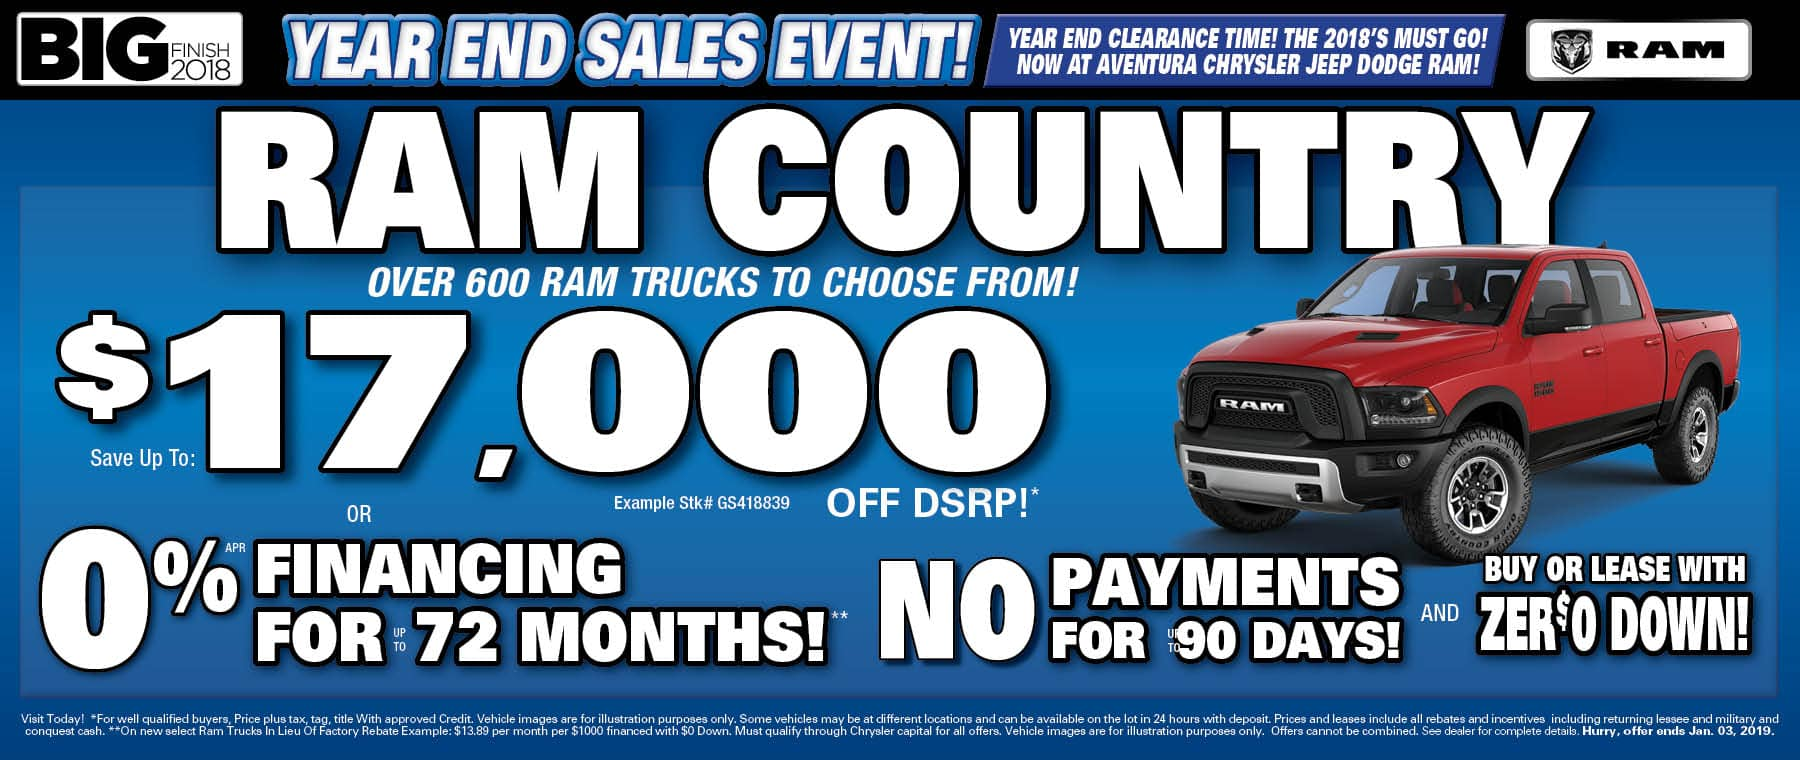 Sae Up to $17,000 On New Ram Trucks! - Ram Country